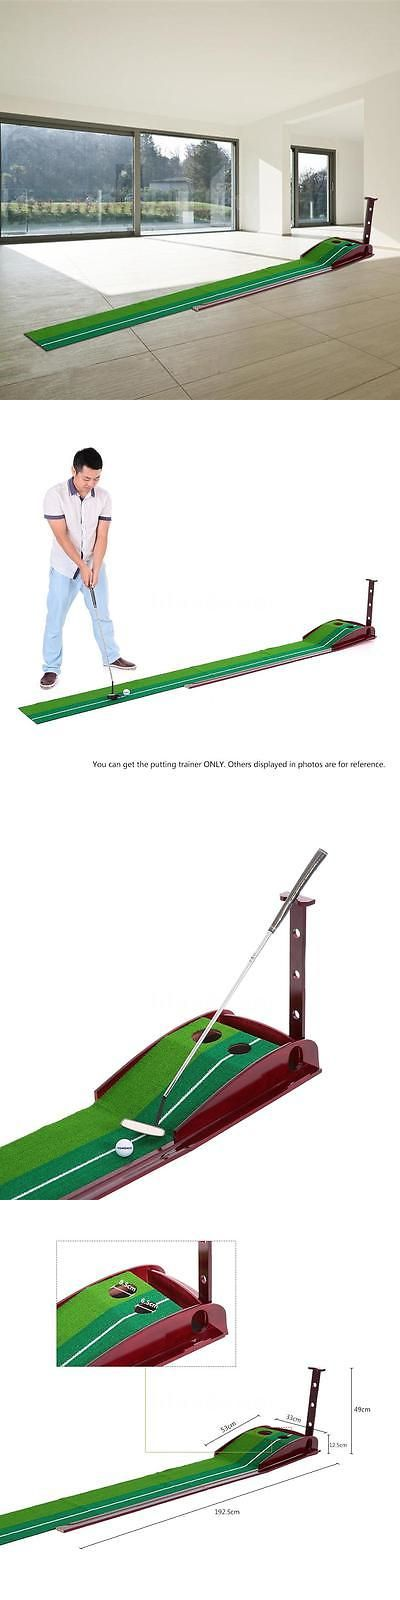 Putting Greens and Aids 36234: Training In Outdoor Portable Golf Practice Putting Mat Putter Trainer 2017 -> BUY IT NOW ONLY: $41.69 on eBay!